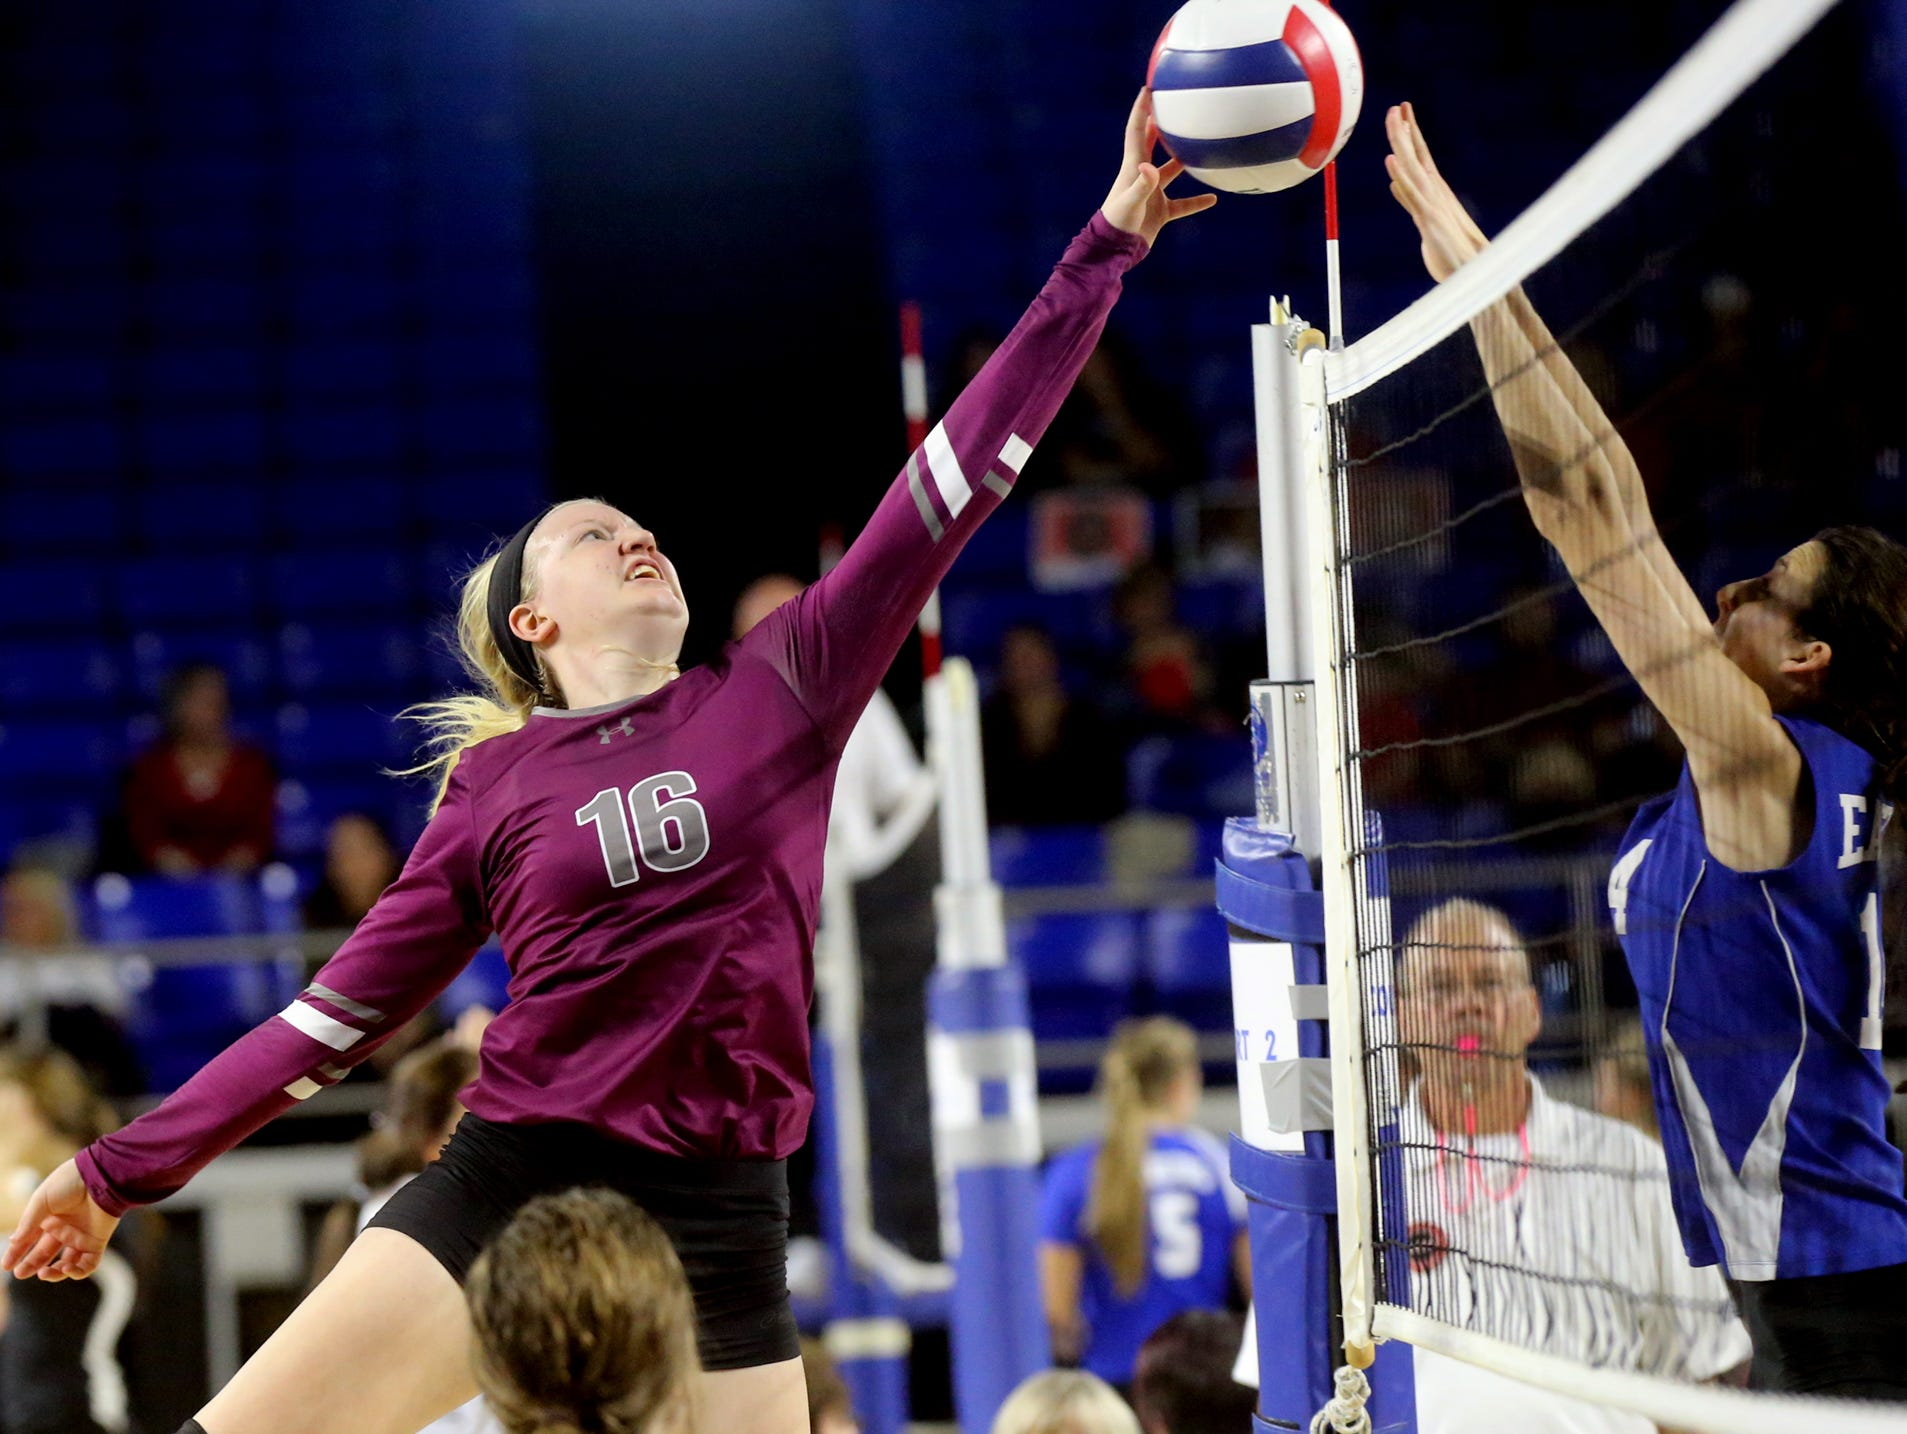 Eagleville's Kristin Barnes (16) matches off with Summertown's Madison Dinwiddie (14) during the losers bracket game of the TSSAA Class A state volleyball tournament, on Thursday, Oct. 22, 2015, at MTSU.